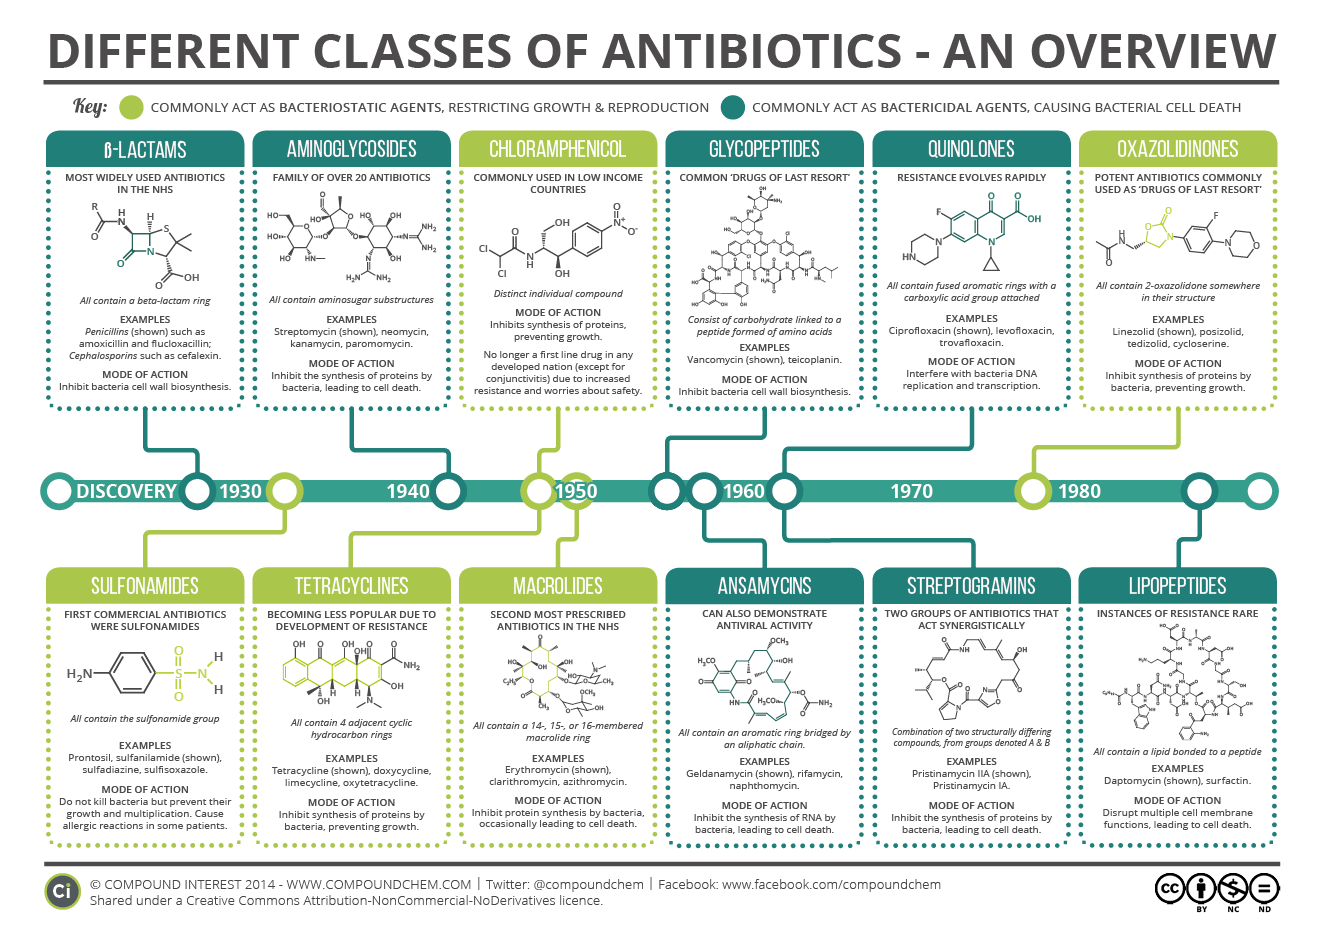 a-guide-to-different-classes-of-antibiotics-aug-15